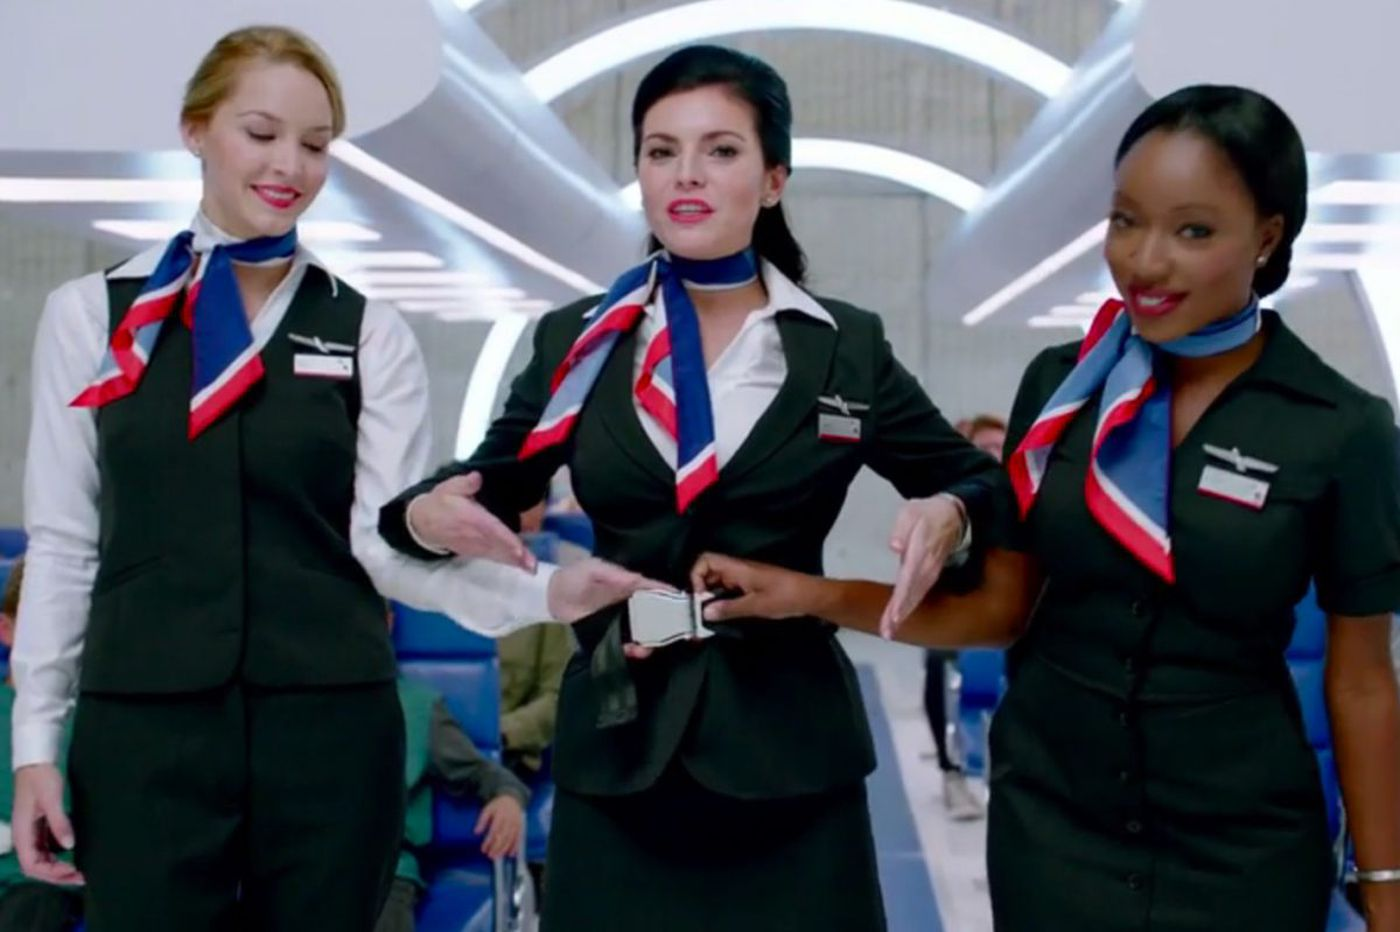 Here's what to watch for as American Airlines employees take uniform battle to court